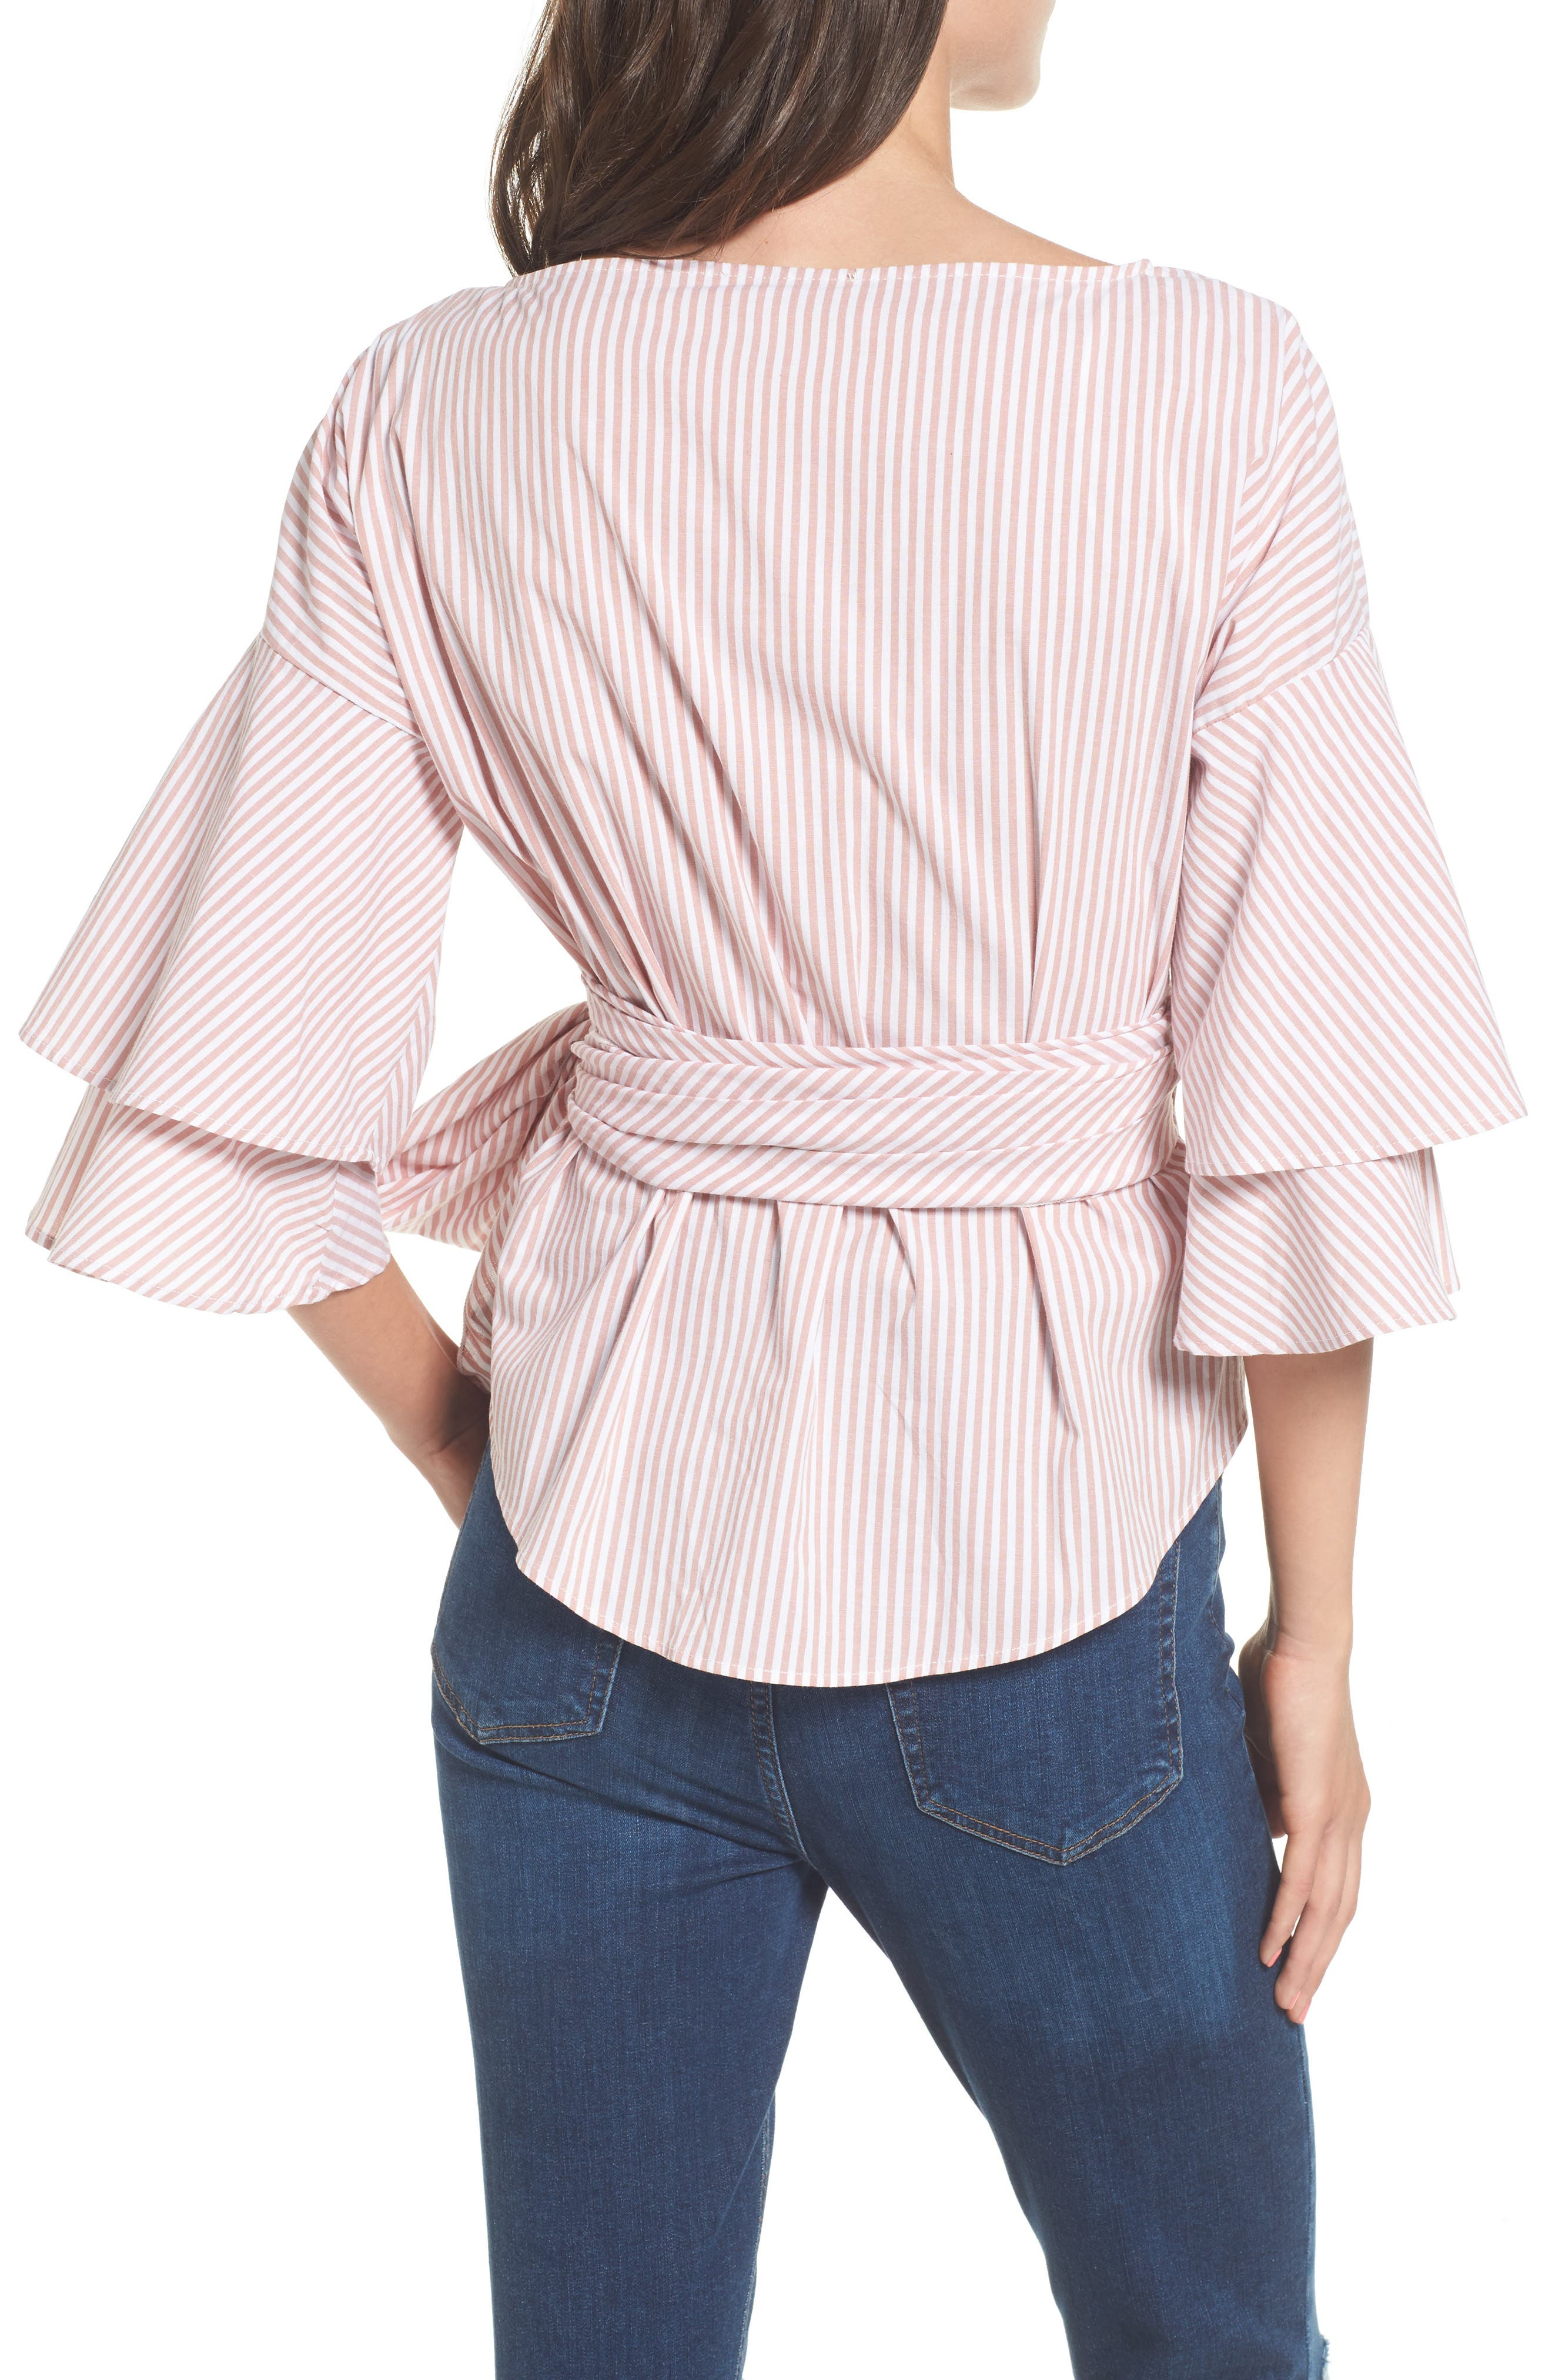 Beckett Tiered Bell Sleeve Top,                             Alternate thumbnail 13, color,